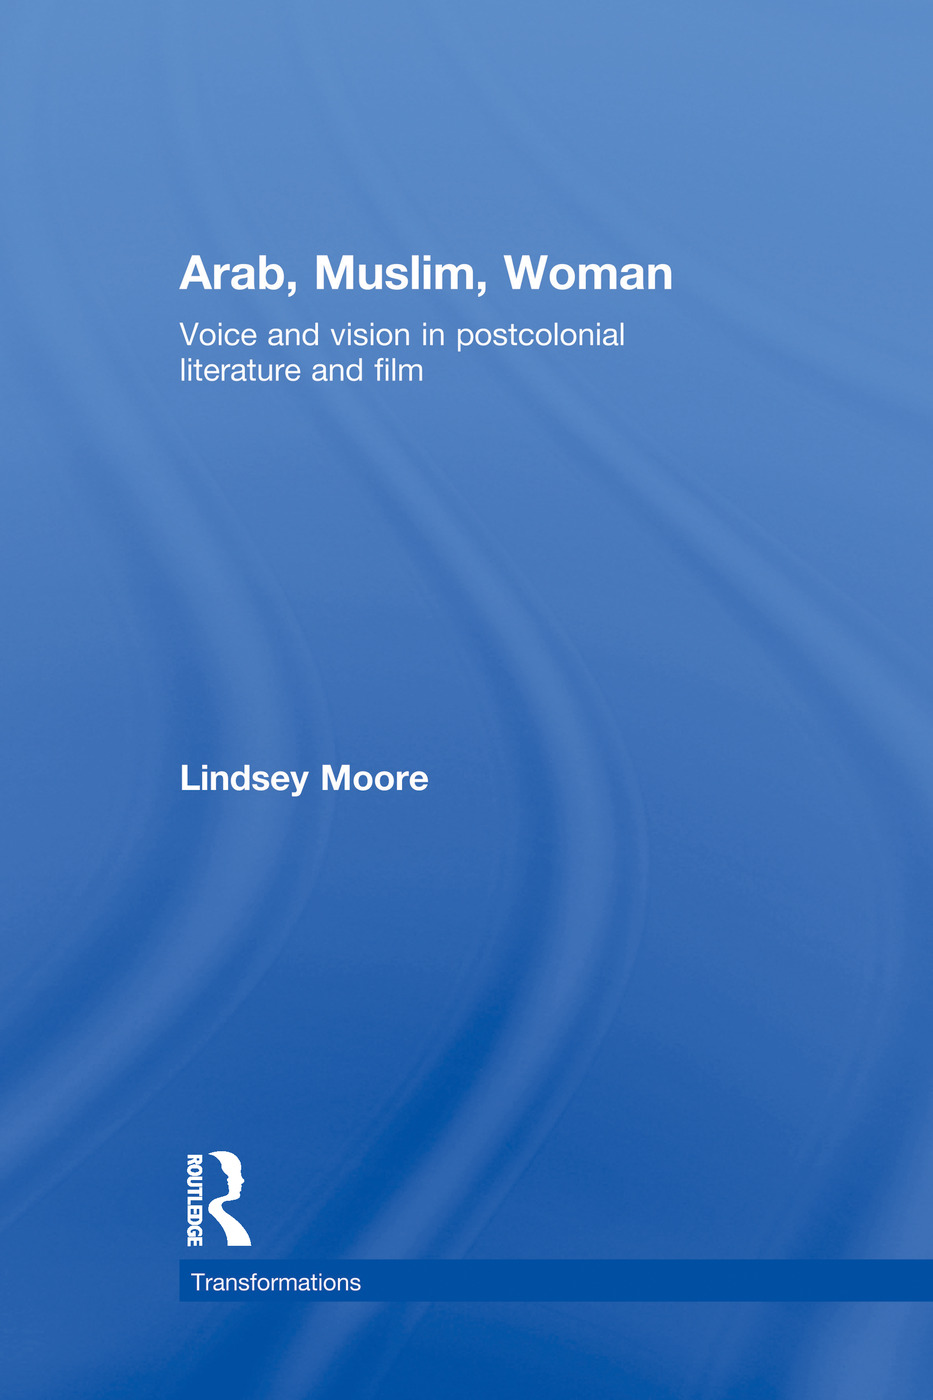 Arab, Muslim, Woman: Voice and Vision in Postcolonial Literature and Film book cover